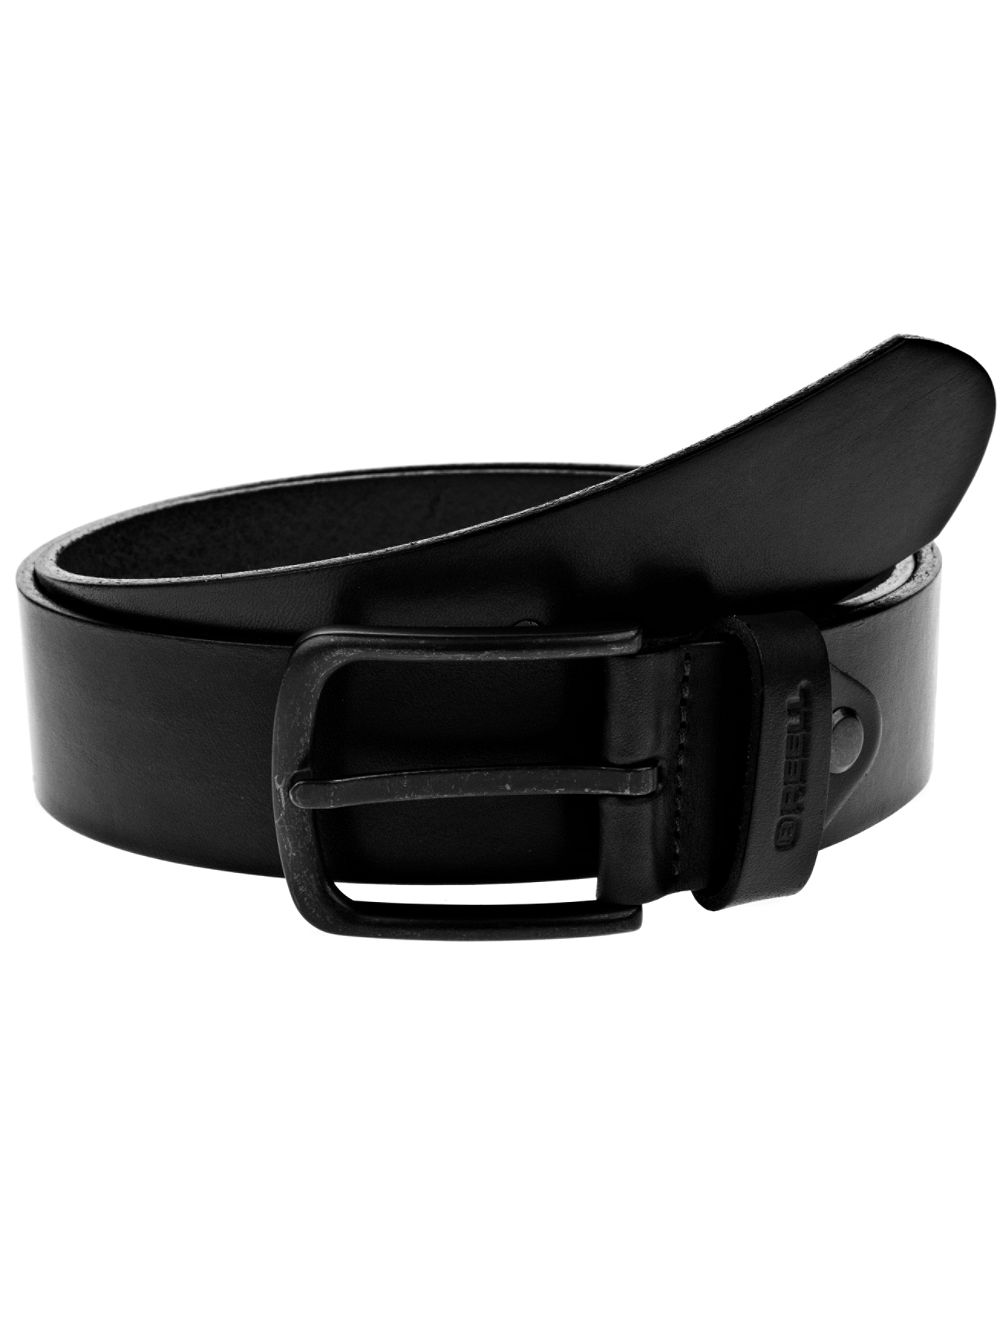 All Black Buckle Pas